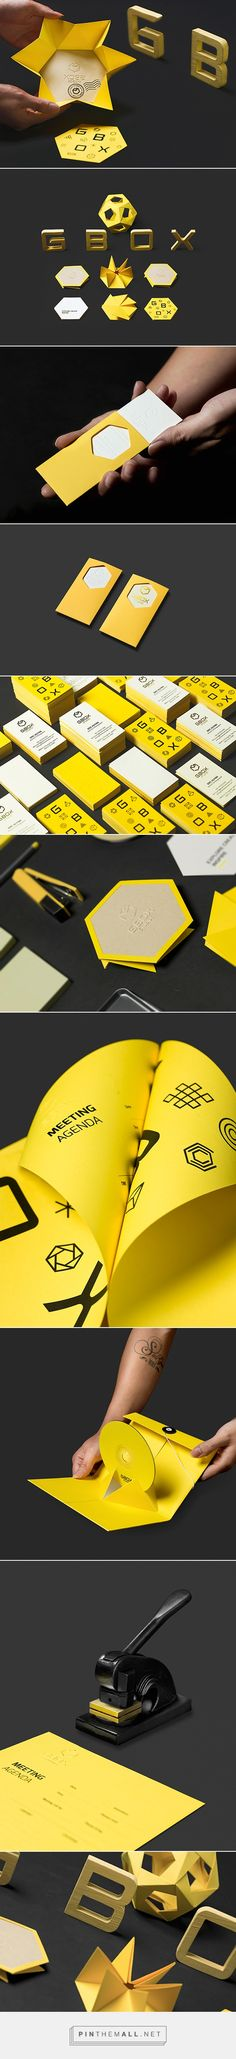 Gbox Studios Branding by Bratus | Inspiration Grid | Design Inspiration... - a grouped images picture - Pin Them All